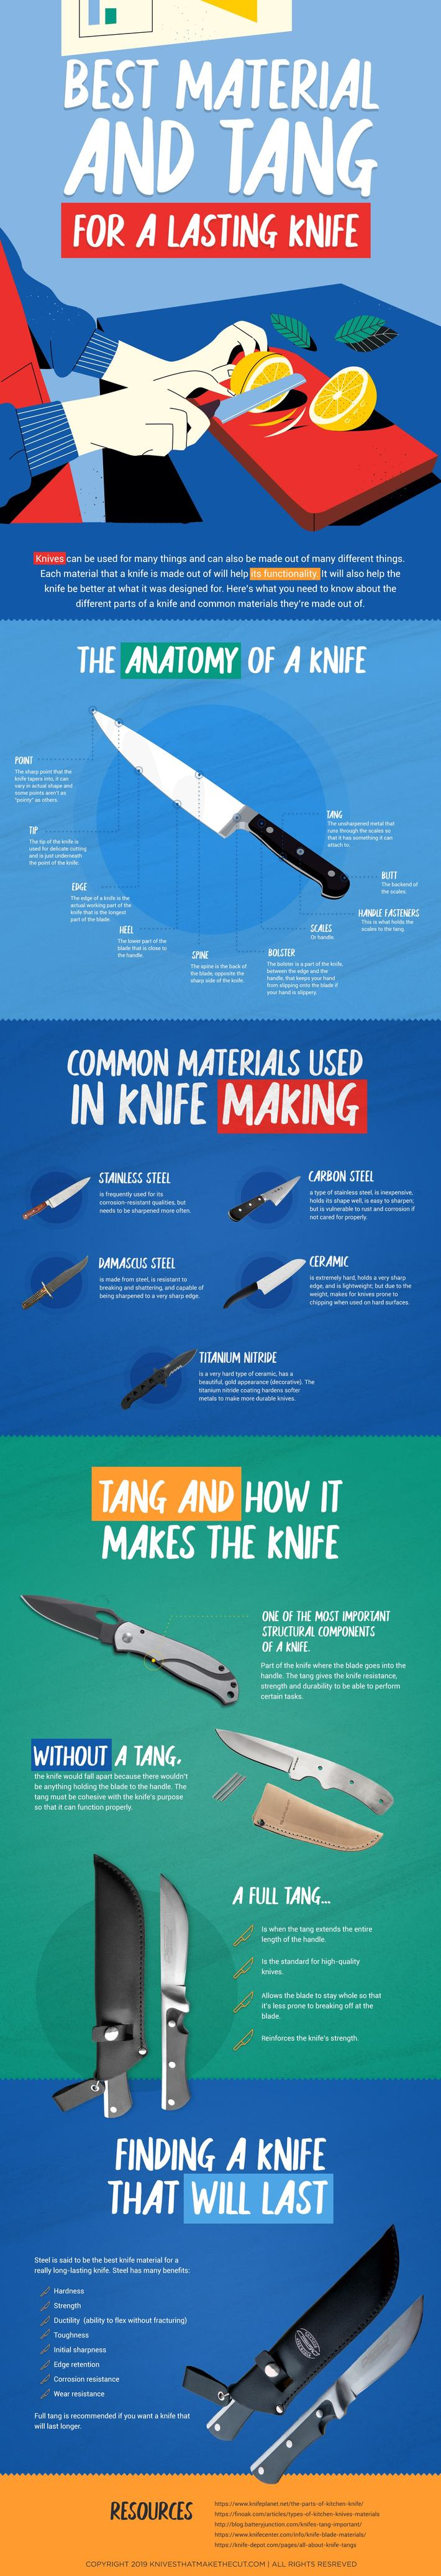 Best Material and Tang for a Lasting Knife